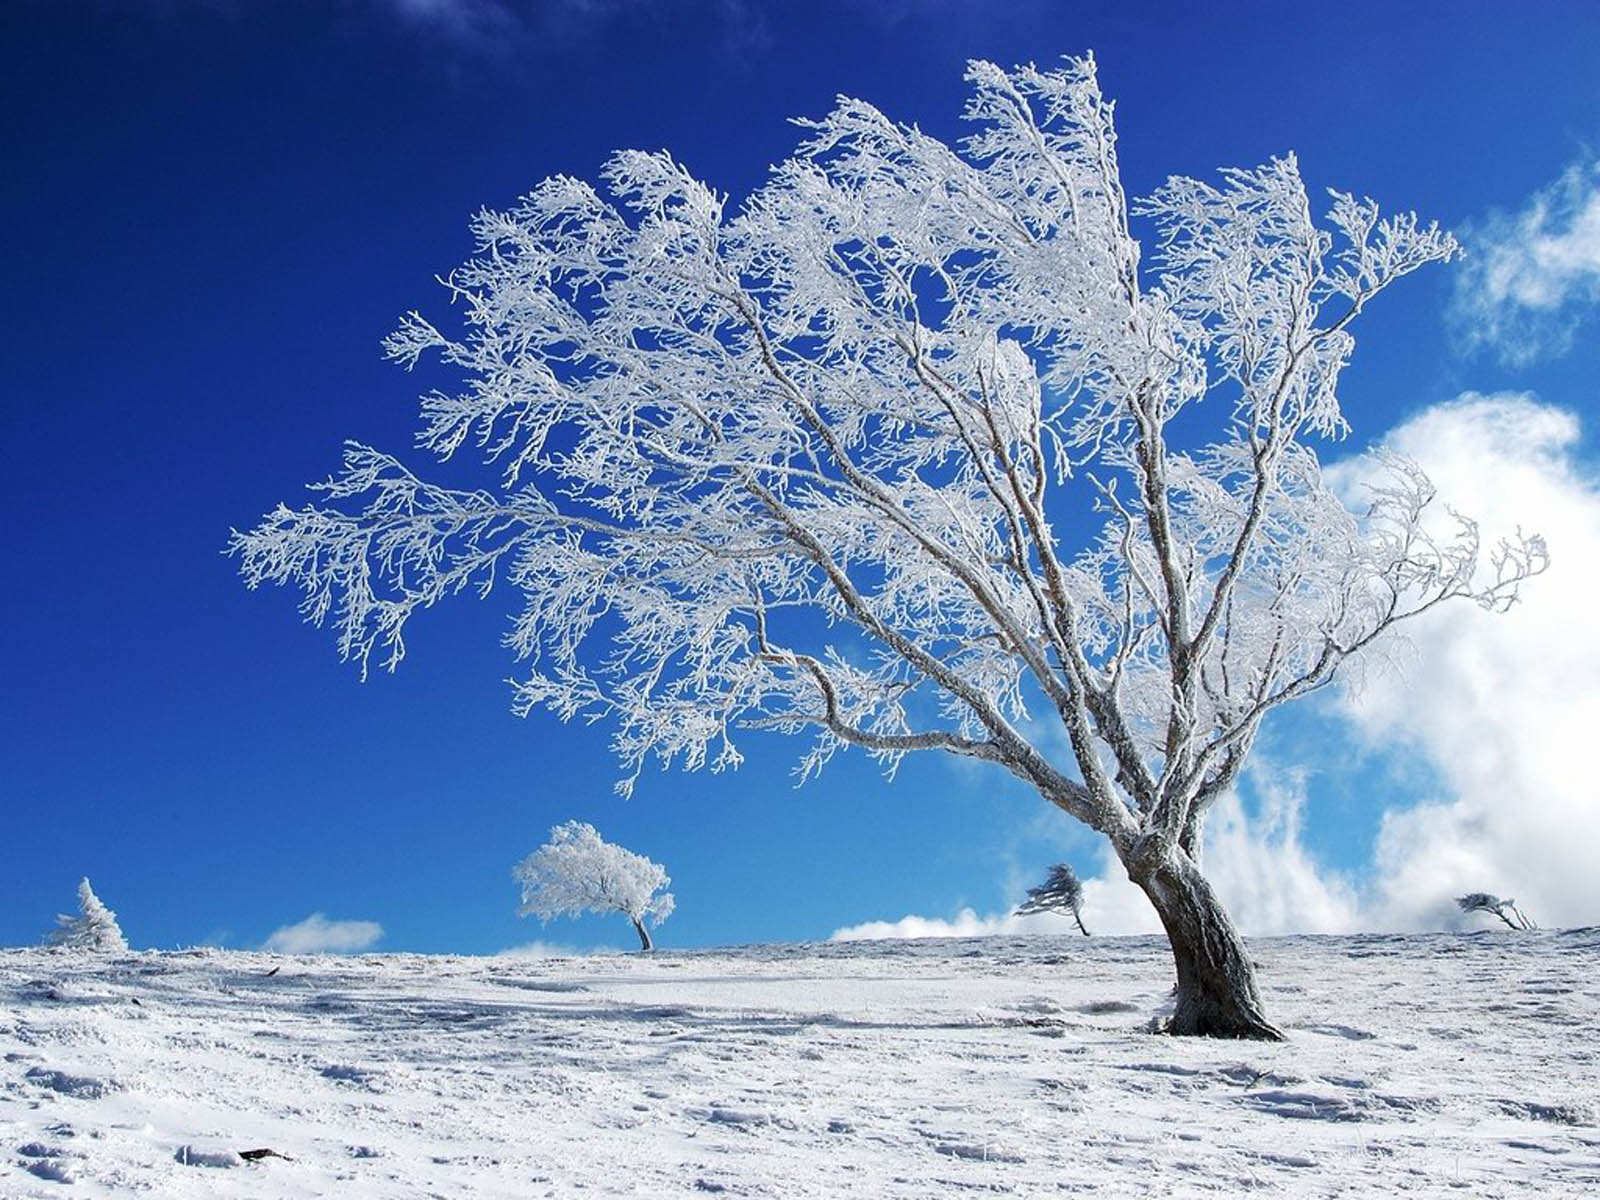 Winter Wallpapers For Computer tag winter desktop wallpapers backgrounds paos pictures and images for